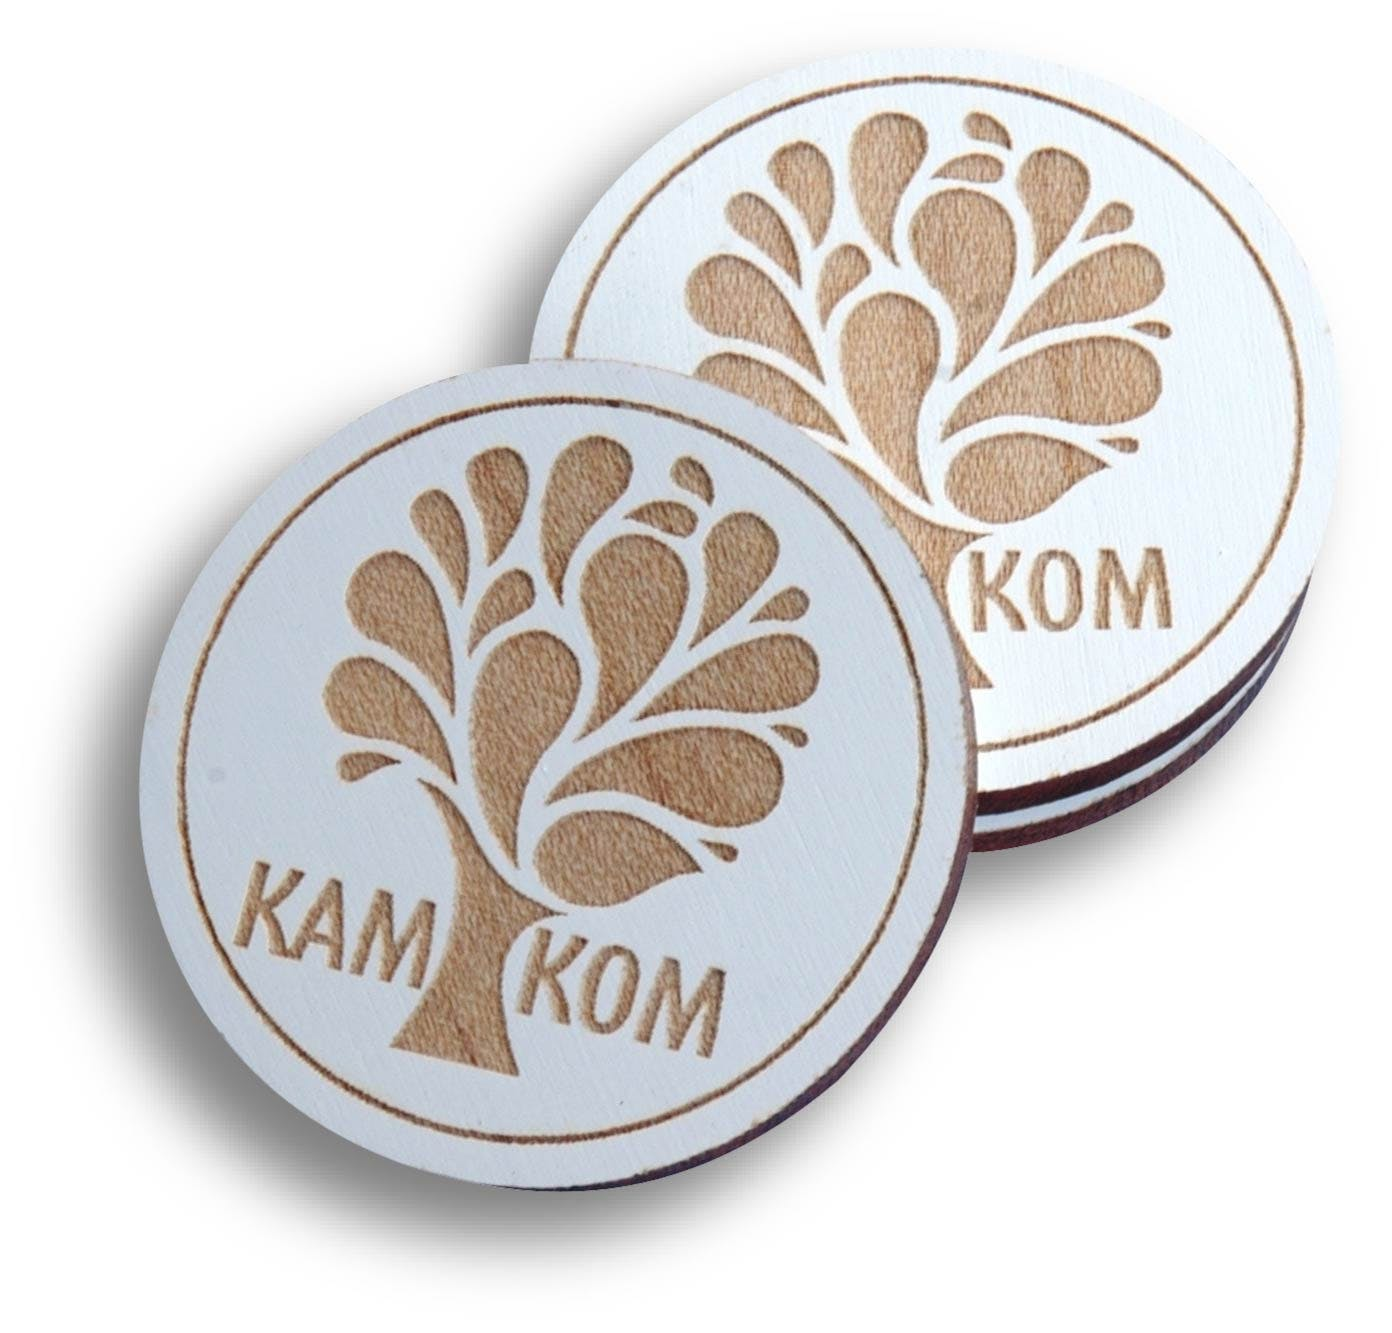 White Wooden Nickel (Item # XGGLM-IMJRF) Promotional token sold by InkEasy